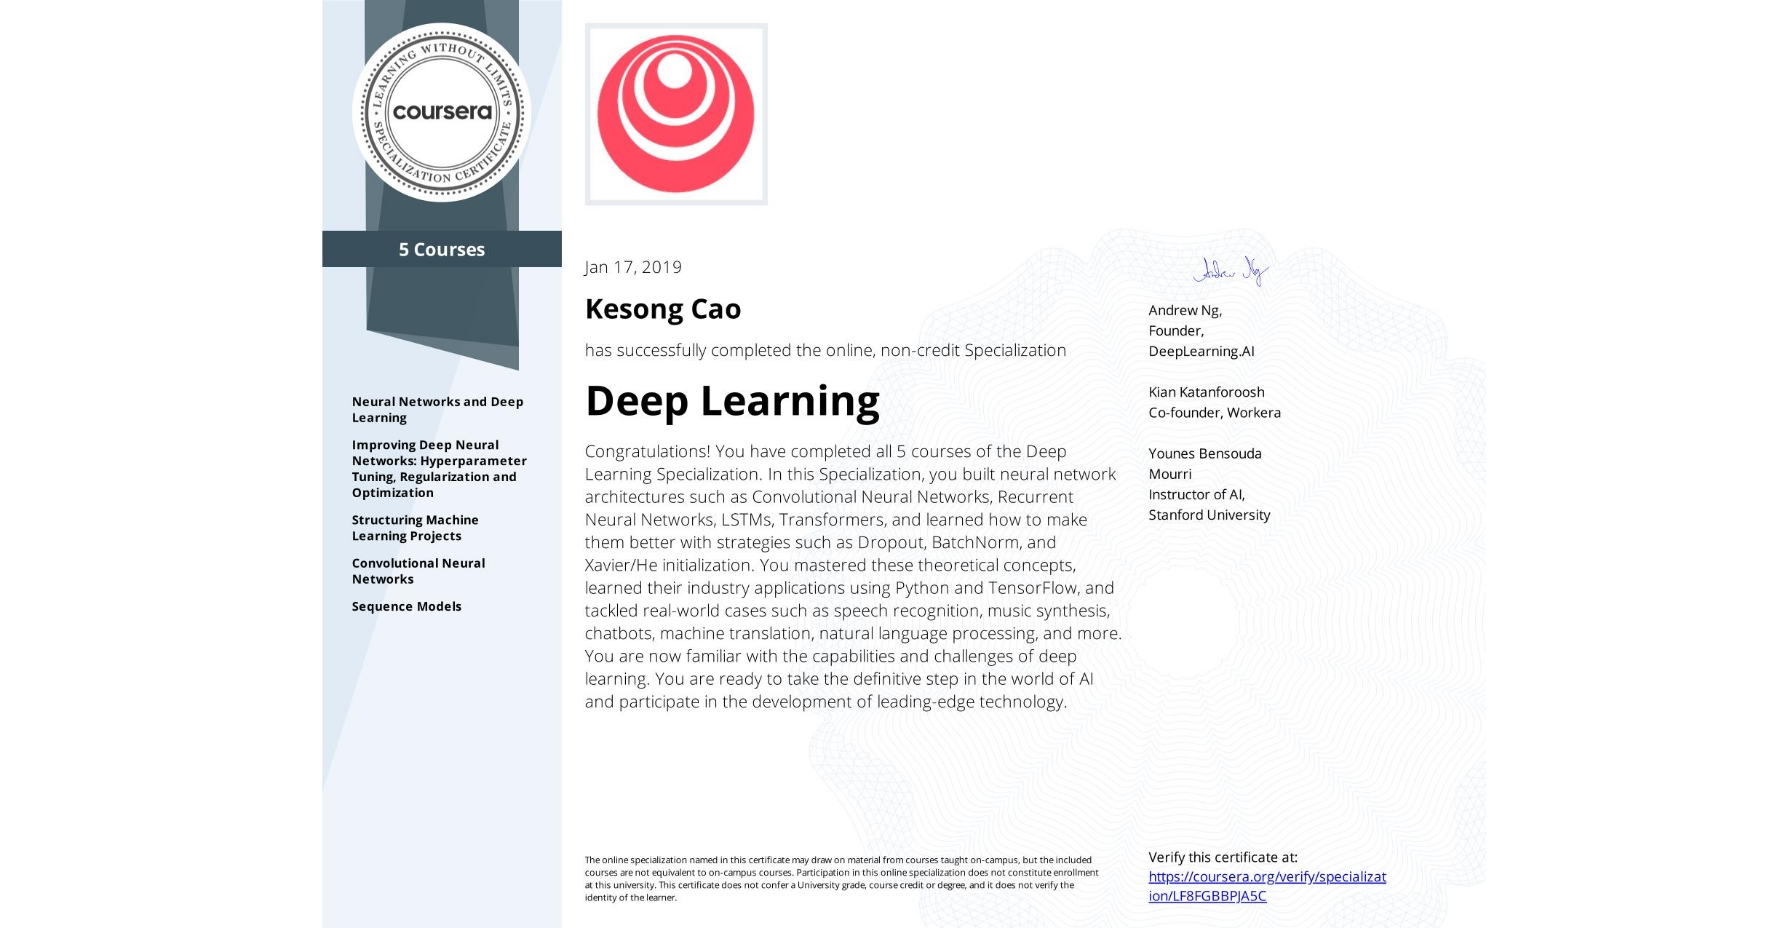 View certificate for Kesong Cao, Deep Learning, offered through Coursera. Congratulations! You have completed all 5 courses of the Deep Learning Specialization.  In this Specialization, you built neural network architectures such as Convolutional Neural Networks, Recurrent Neural Networks, LSTMs, Transformers, and learned how to make them better with strategies such as Dropout, BatchNorm, and Xavier/He initialization. You mastered these theoretical concepts, learned their industry applications using Python and TensorFlow, and tackled real-world cases such as speech recognition, music synthesis, chatbots, machine translation, natural language processing, and more.  You are now familiar with the capabilities and challenges of deep learning. You are ready to take the definitive step in the world of AI and participate in the development of leading-edge technology.